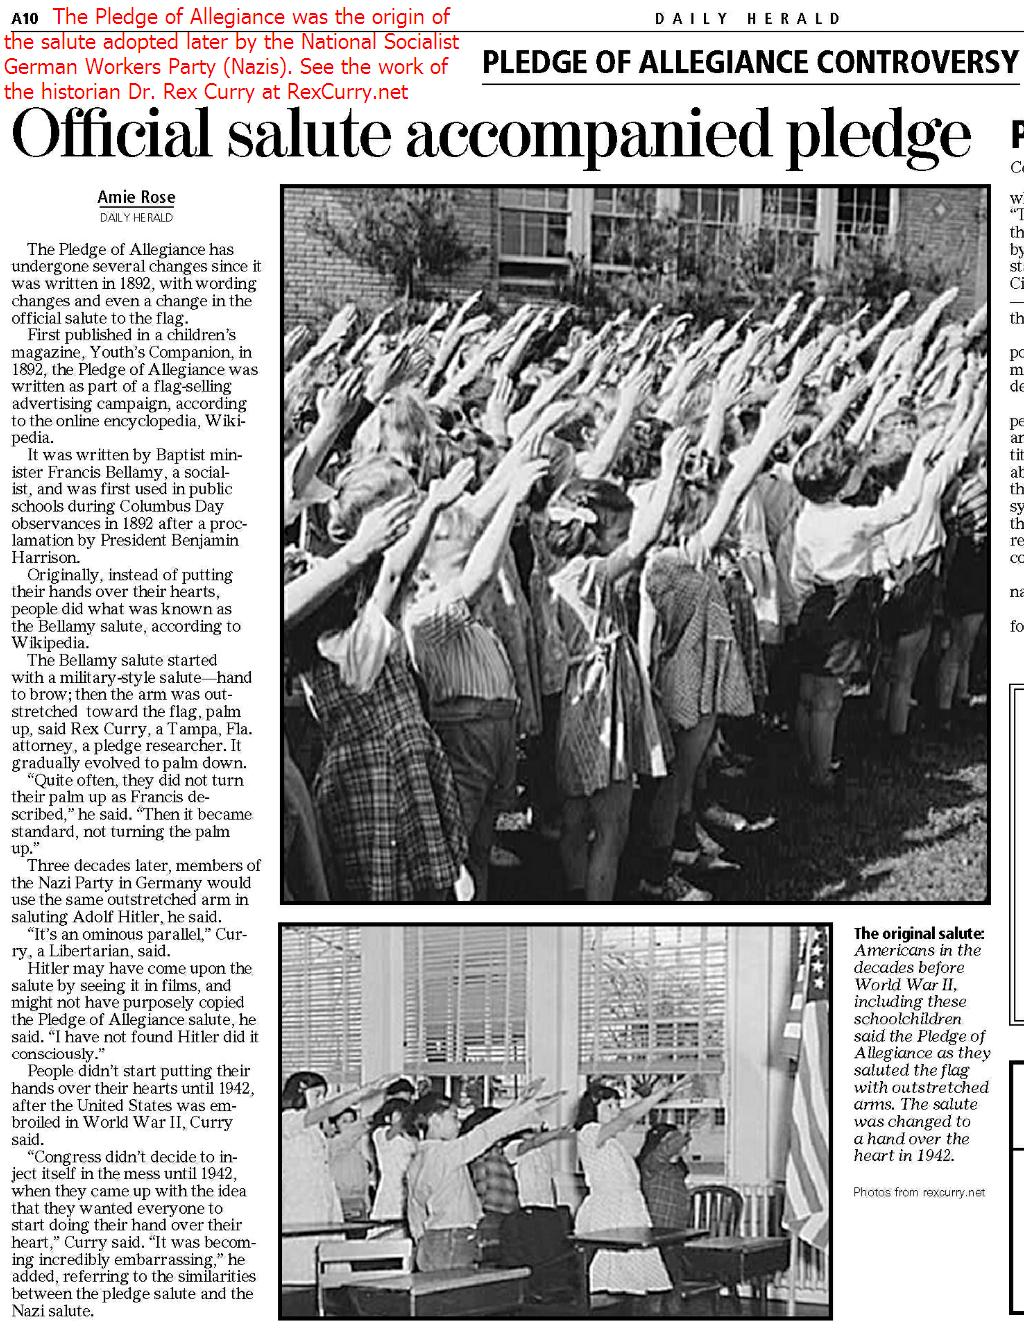 Pledge of Allegiance controversy, official salute, USA, Third Reich National Socialist German Workers Party, American salute, Bellamy salute,